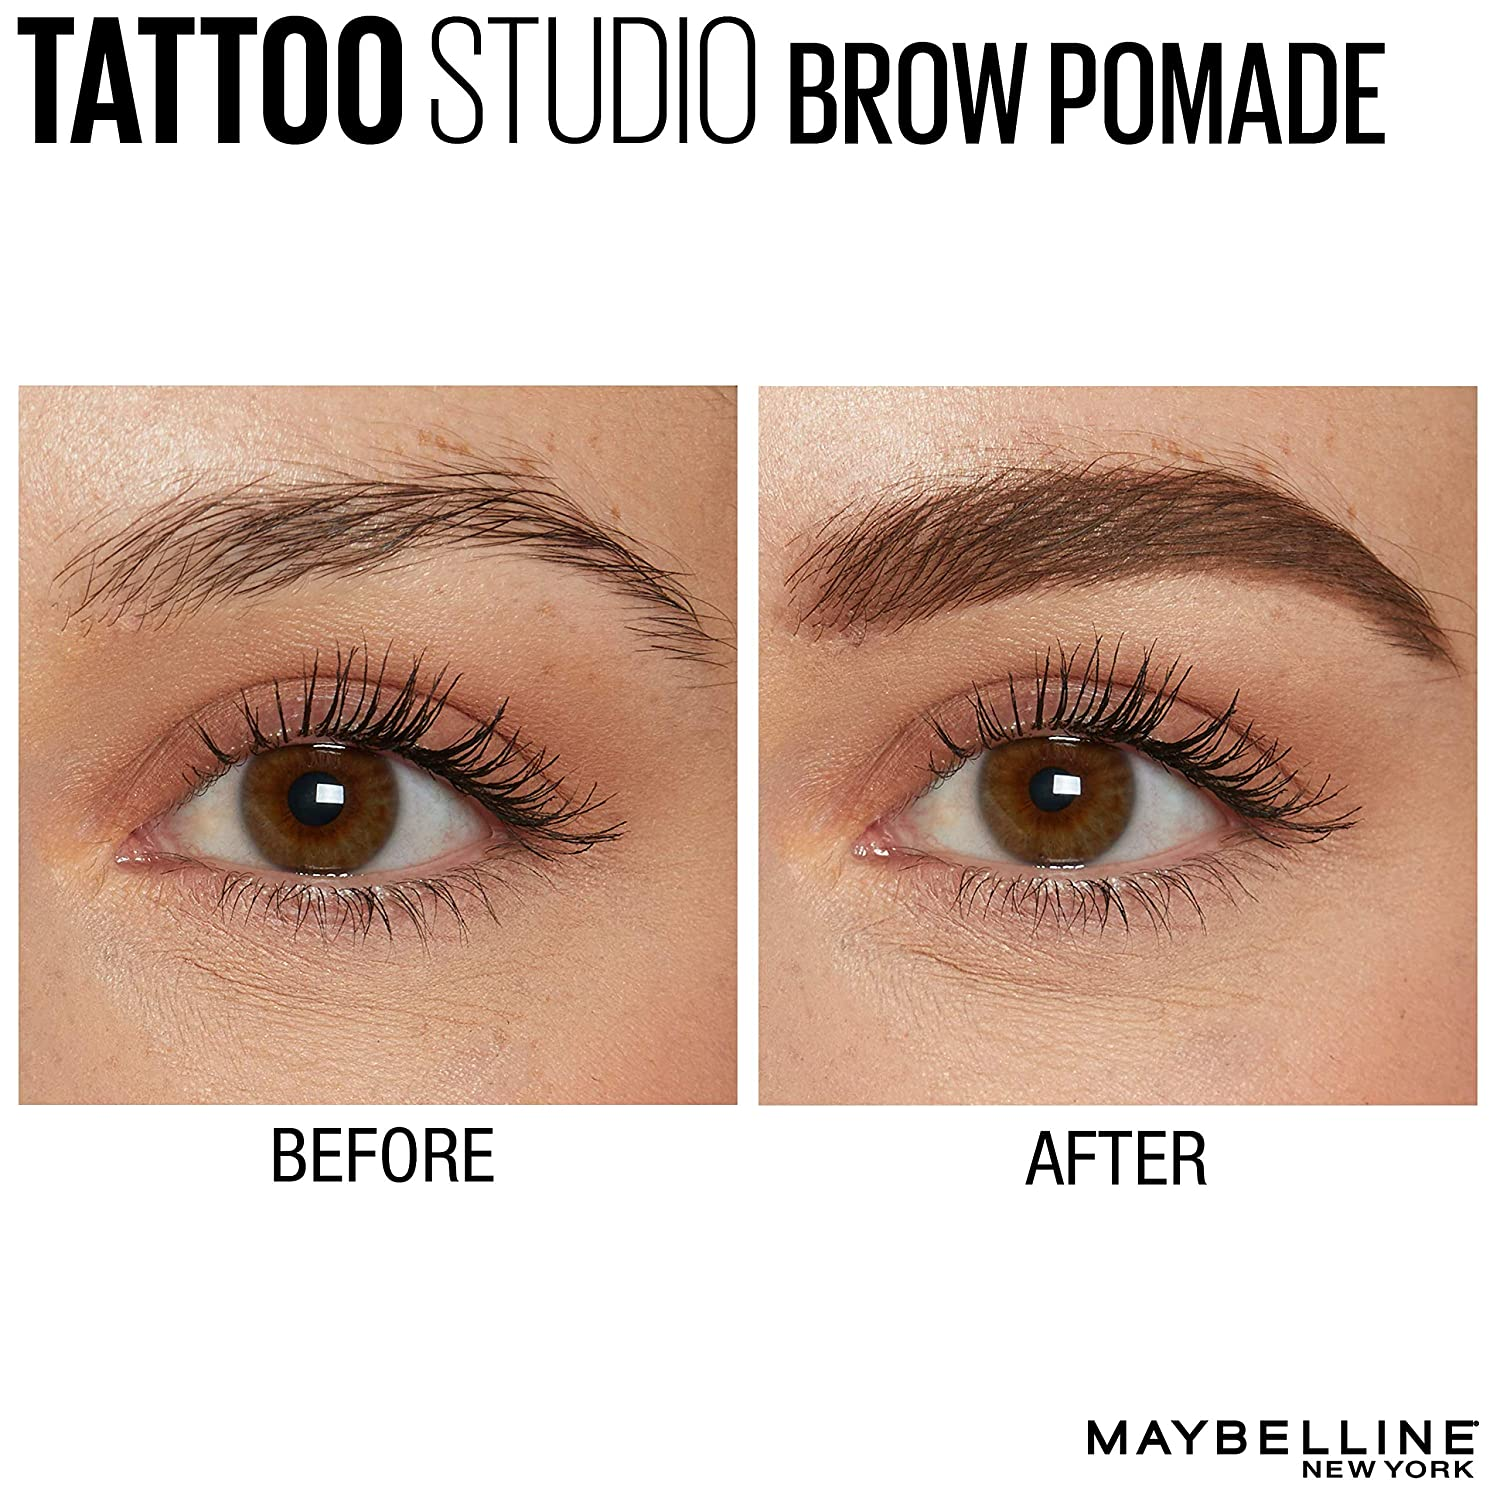 ff34848e70c Amazon.com: Maybelline New York Tattoostudio Brow Pomade Long Lasting,  Buildable, Eyebrow Makeup, Medium Brown, 0.106 Ounce: Beauty